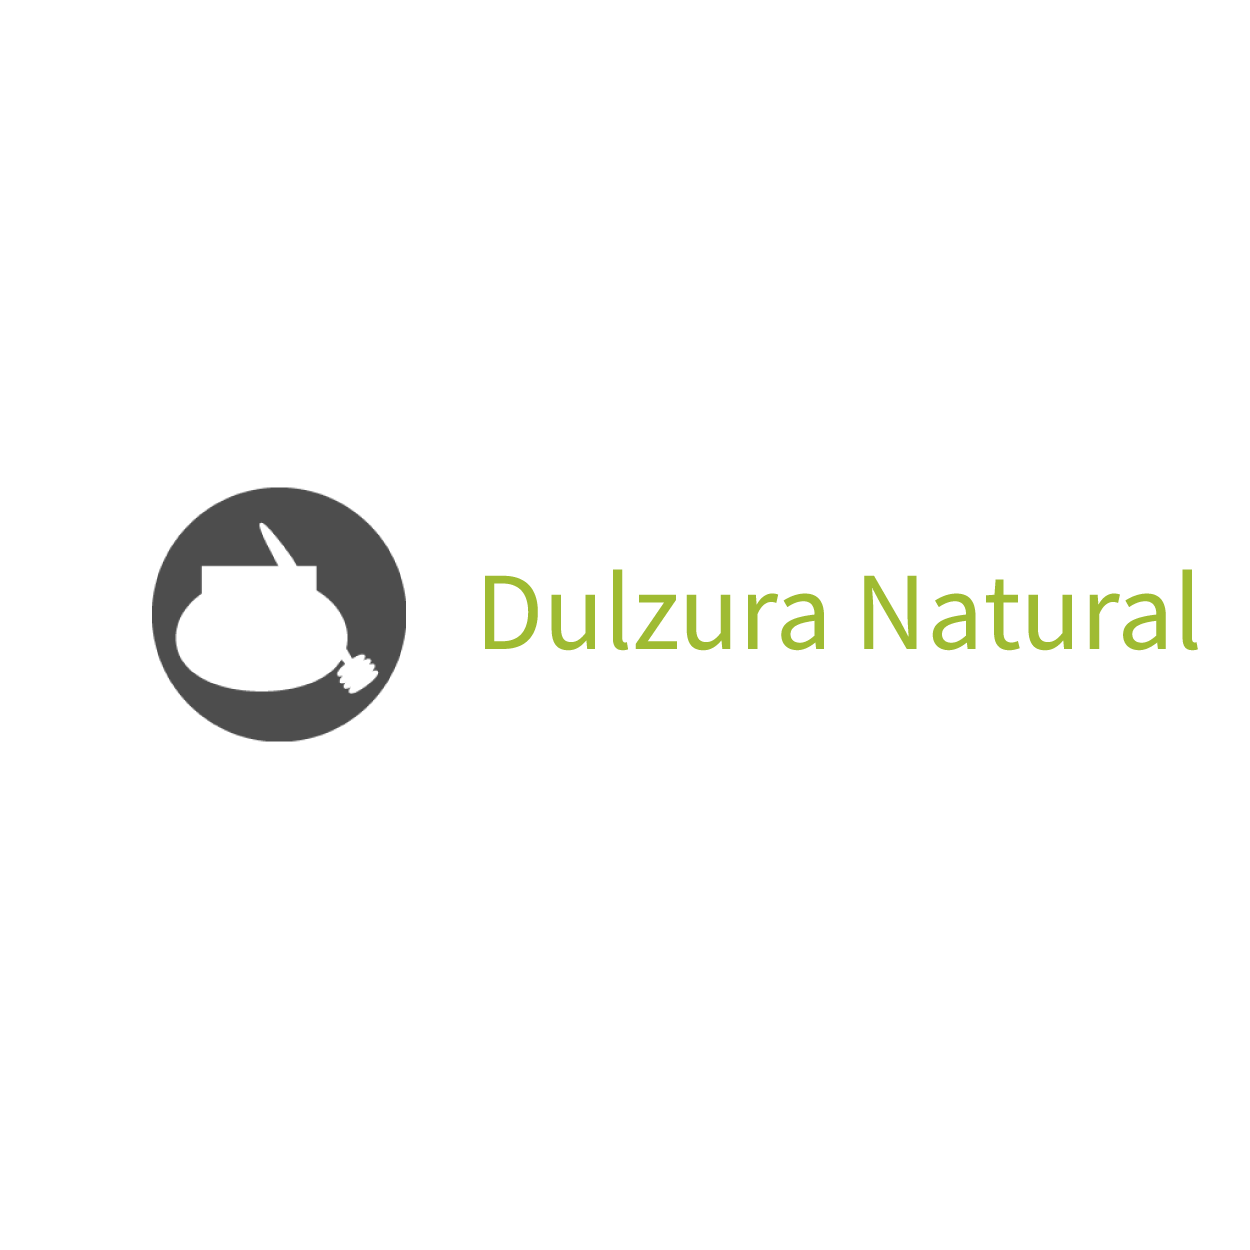 Dulzura Natural Kober-Intexim